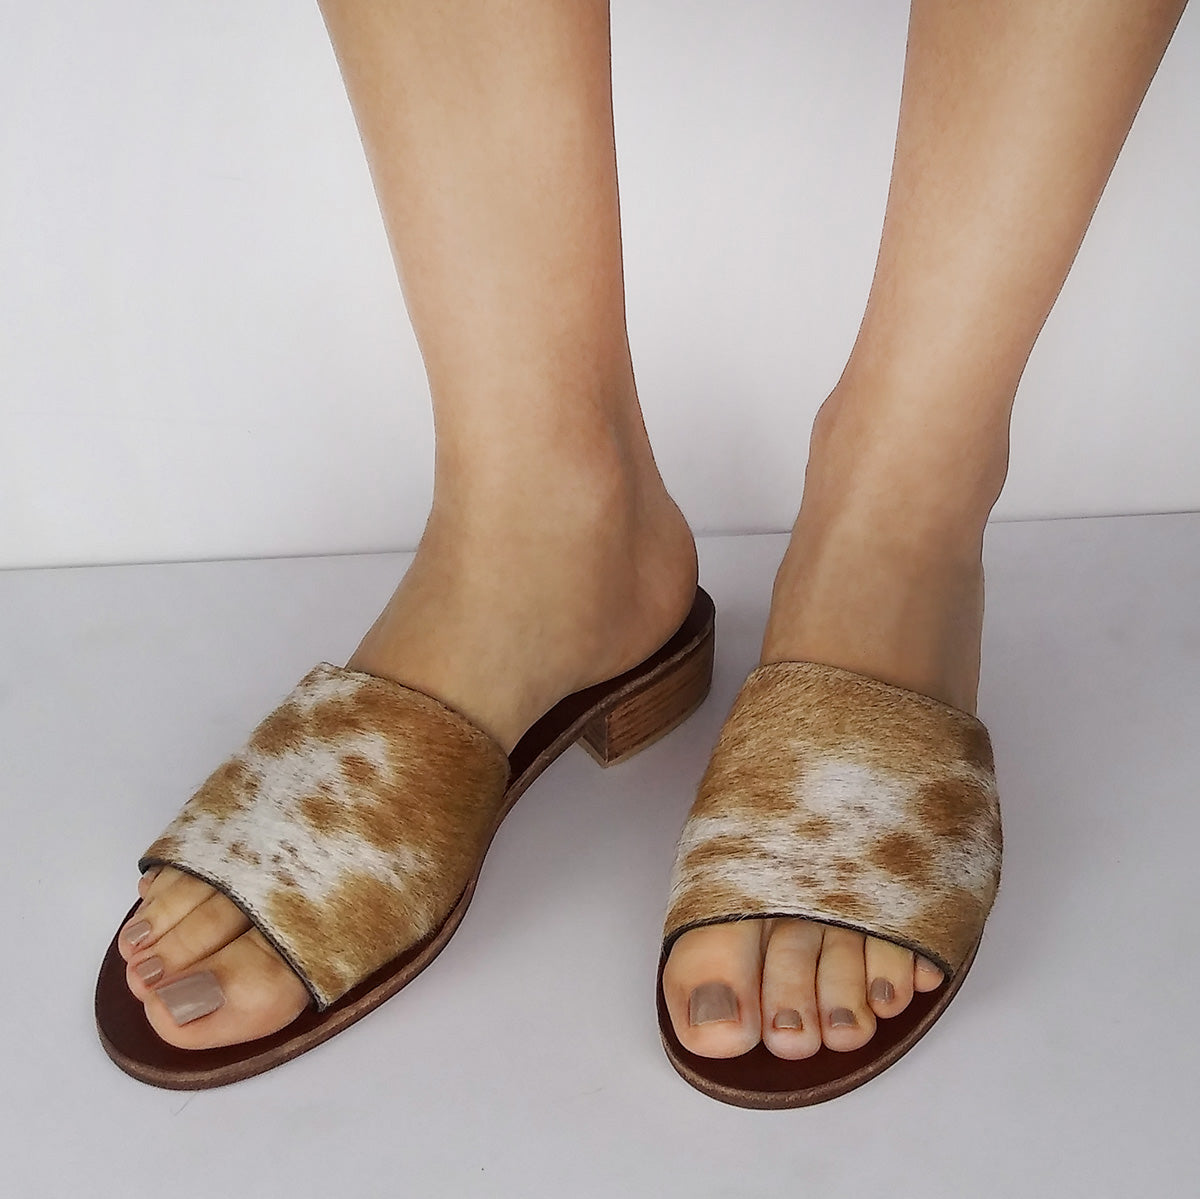 Natural Calf Hair, Tan & White Slide Sandals. Size Available 9. [NEW: NON-SLIP & SOLE PROTECTOR]